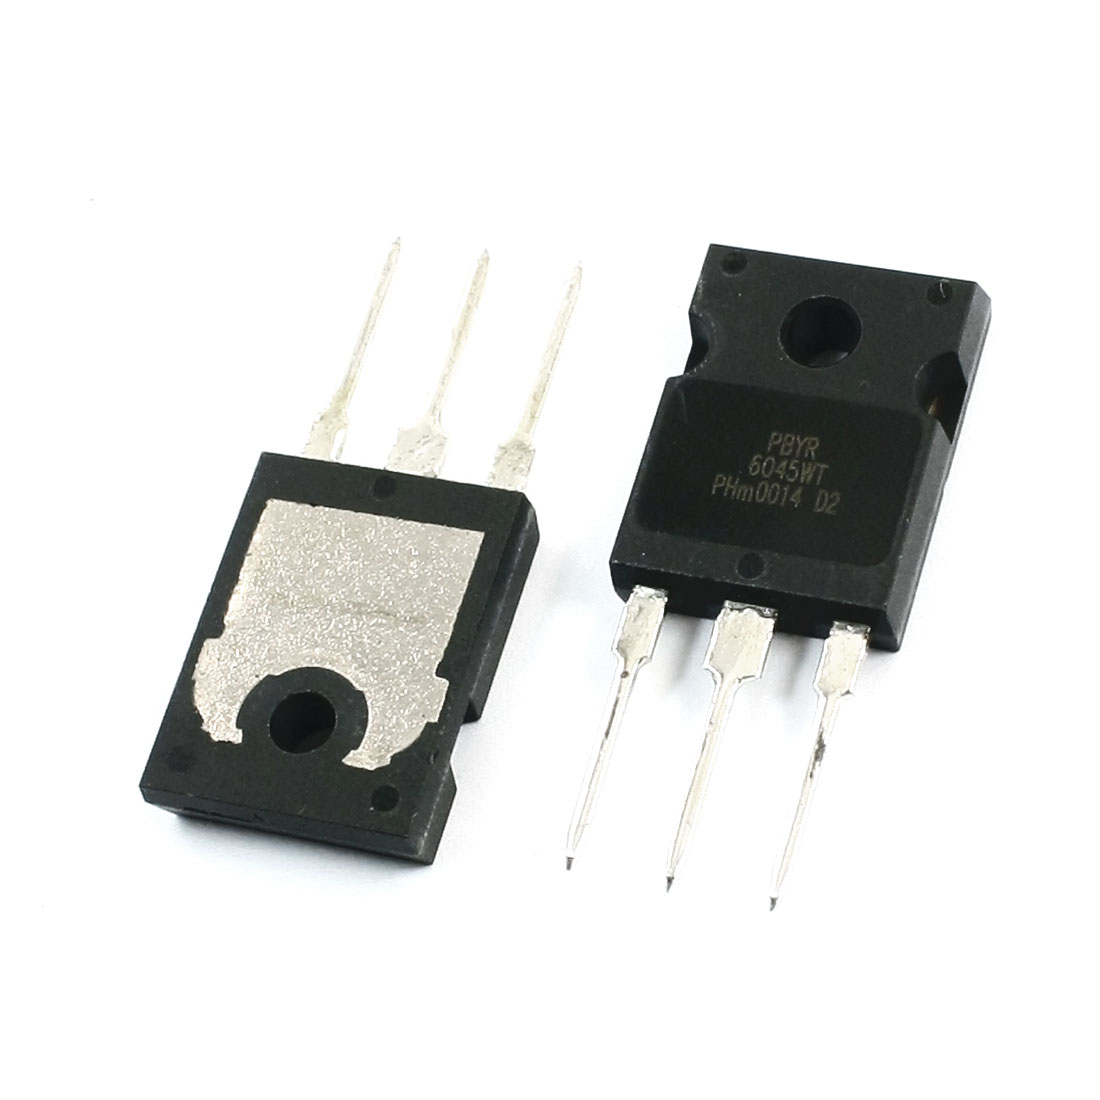 2Pcs PBYR6045WT Electronic 3 Terminals Through Hole Mounting Dual High-Voltage Power Schottky Rectifier Diode